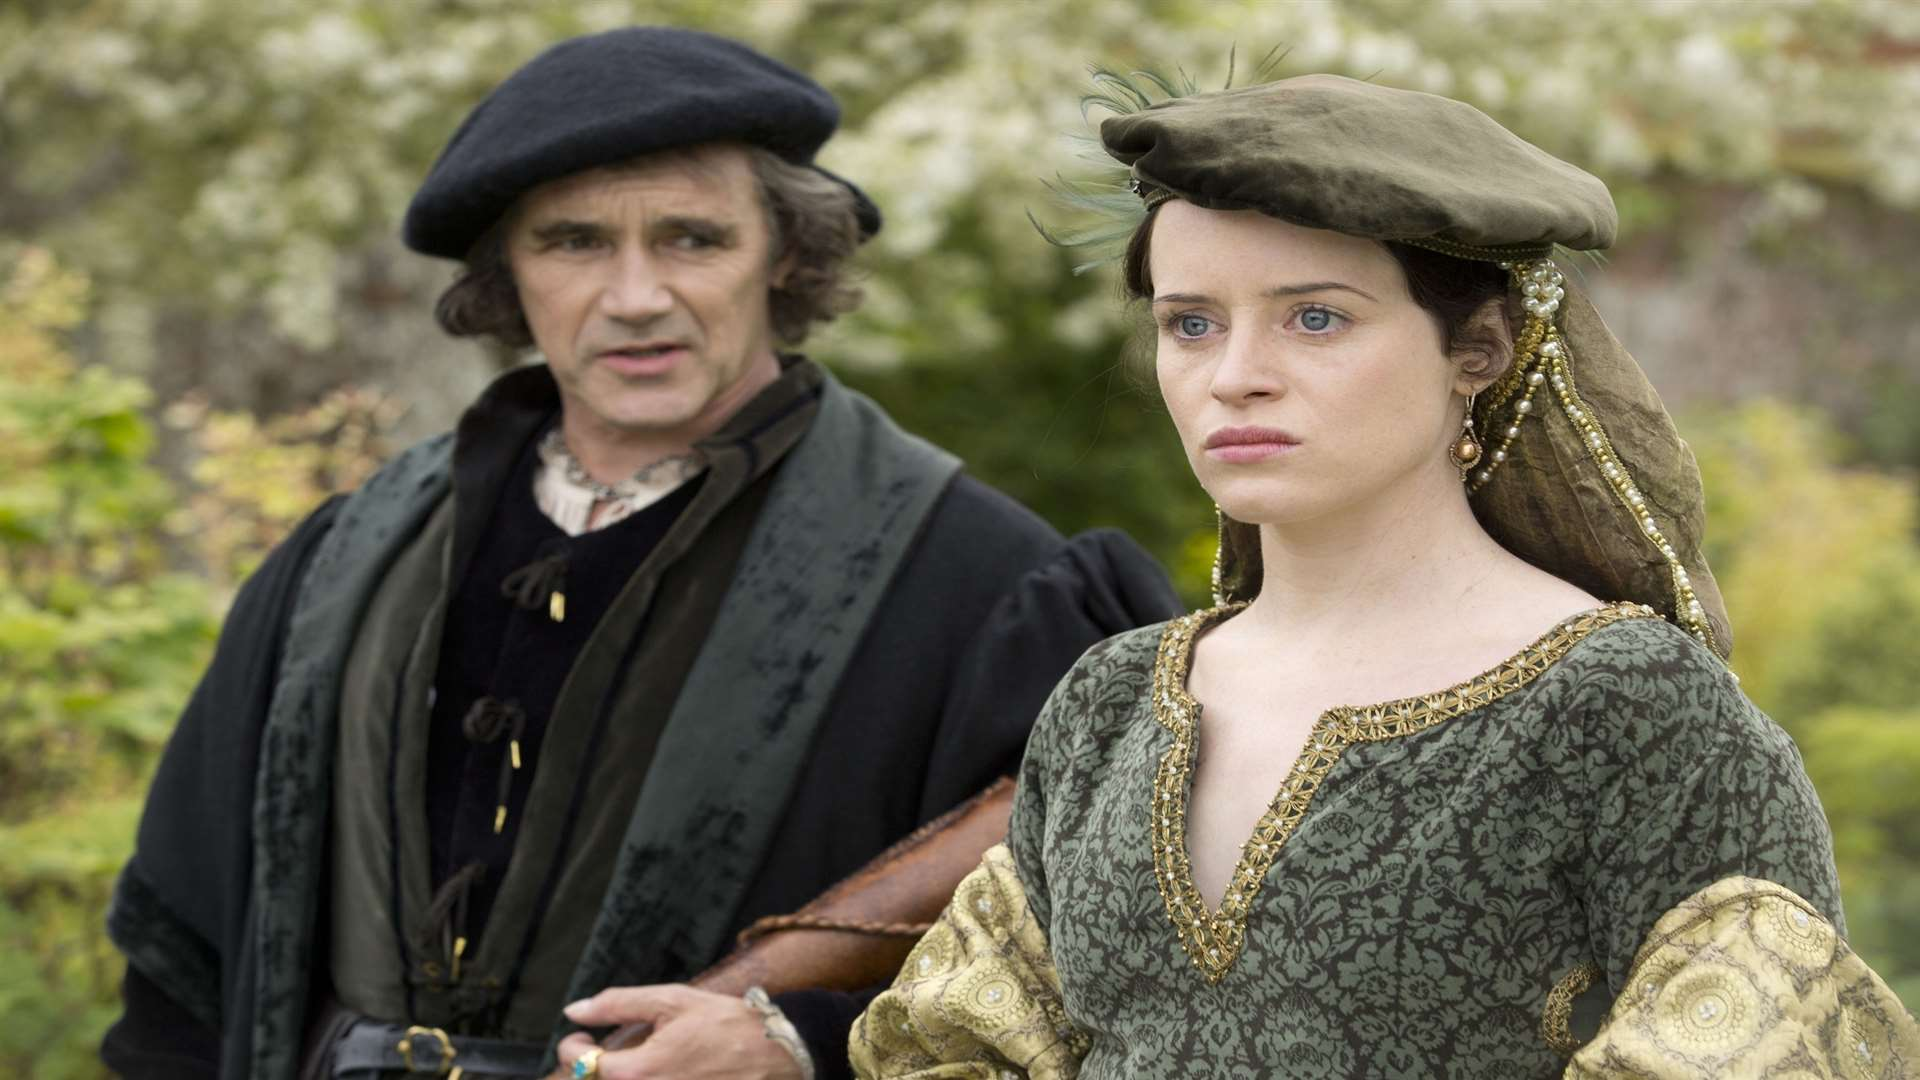 Mark Rylance in a scene with Claire Foy as Anne Boleyn, in the BBC drama Wolf Hall, filmed at Penshurst Place